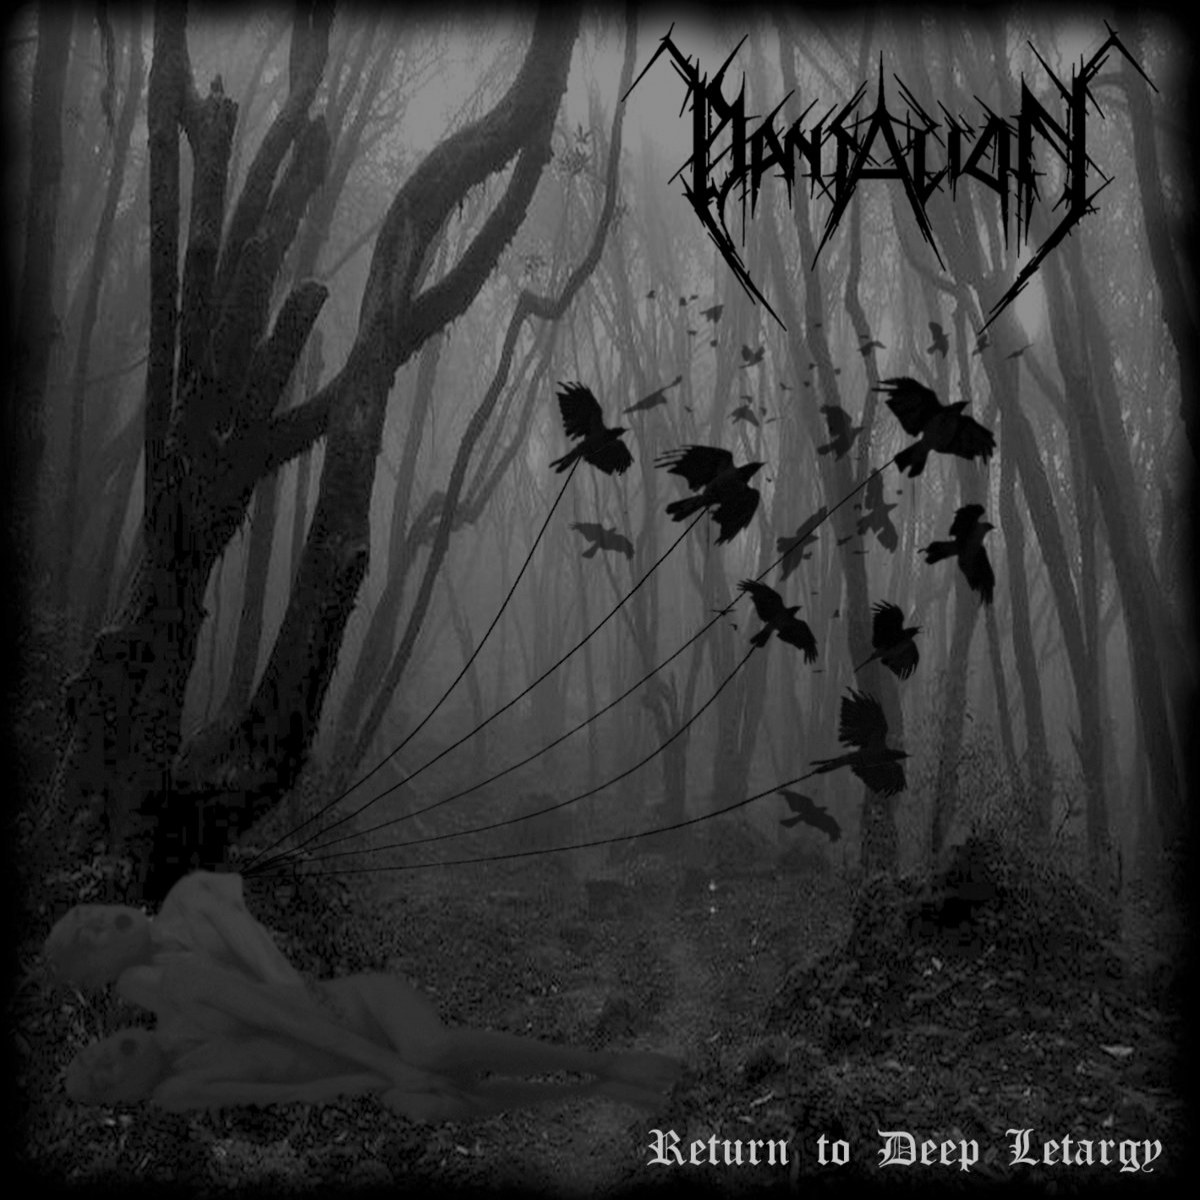 Review for Dantalion - Return to Deep Lethargy